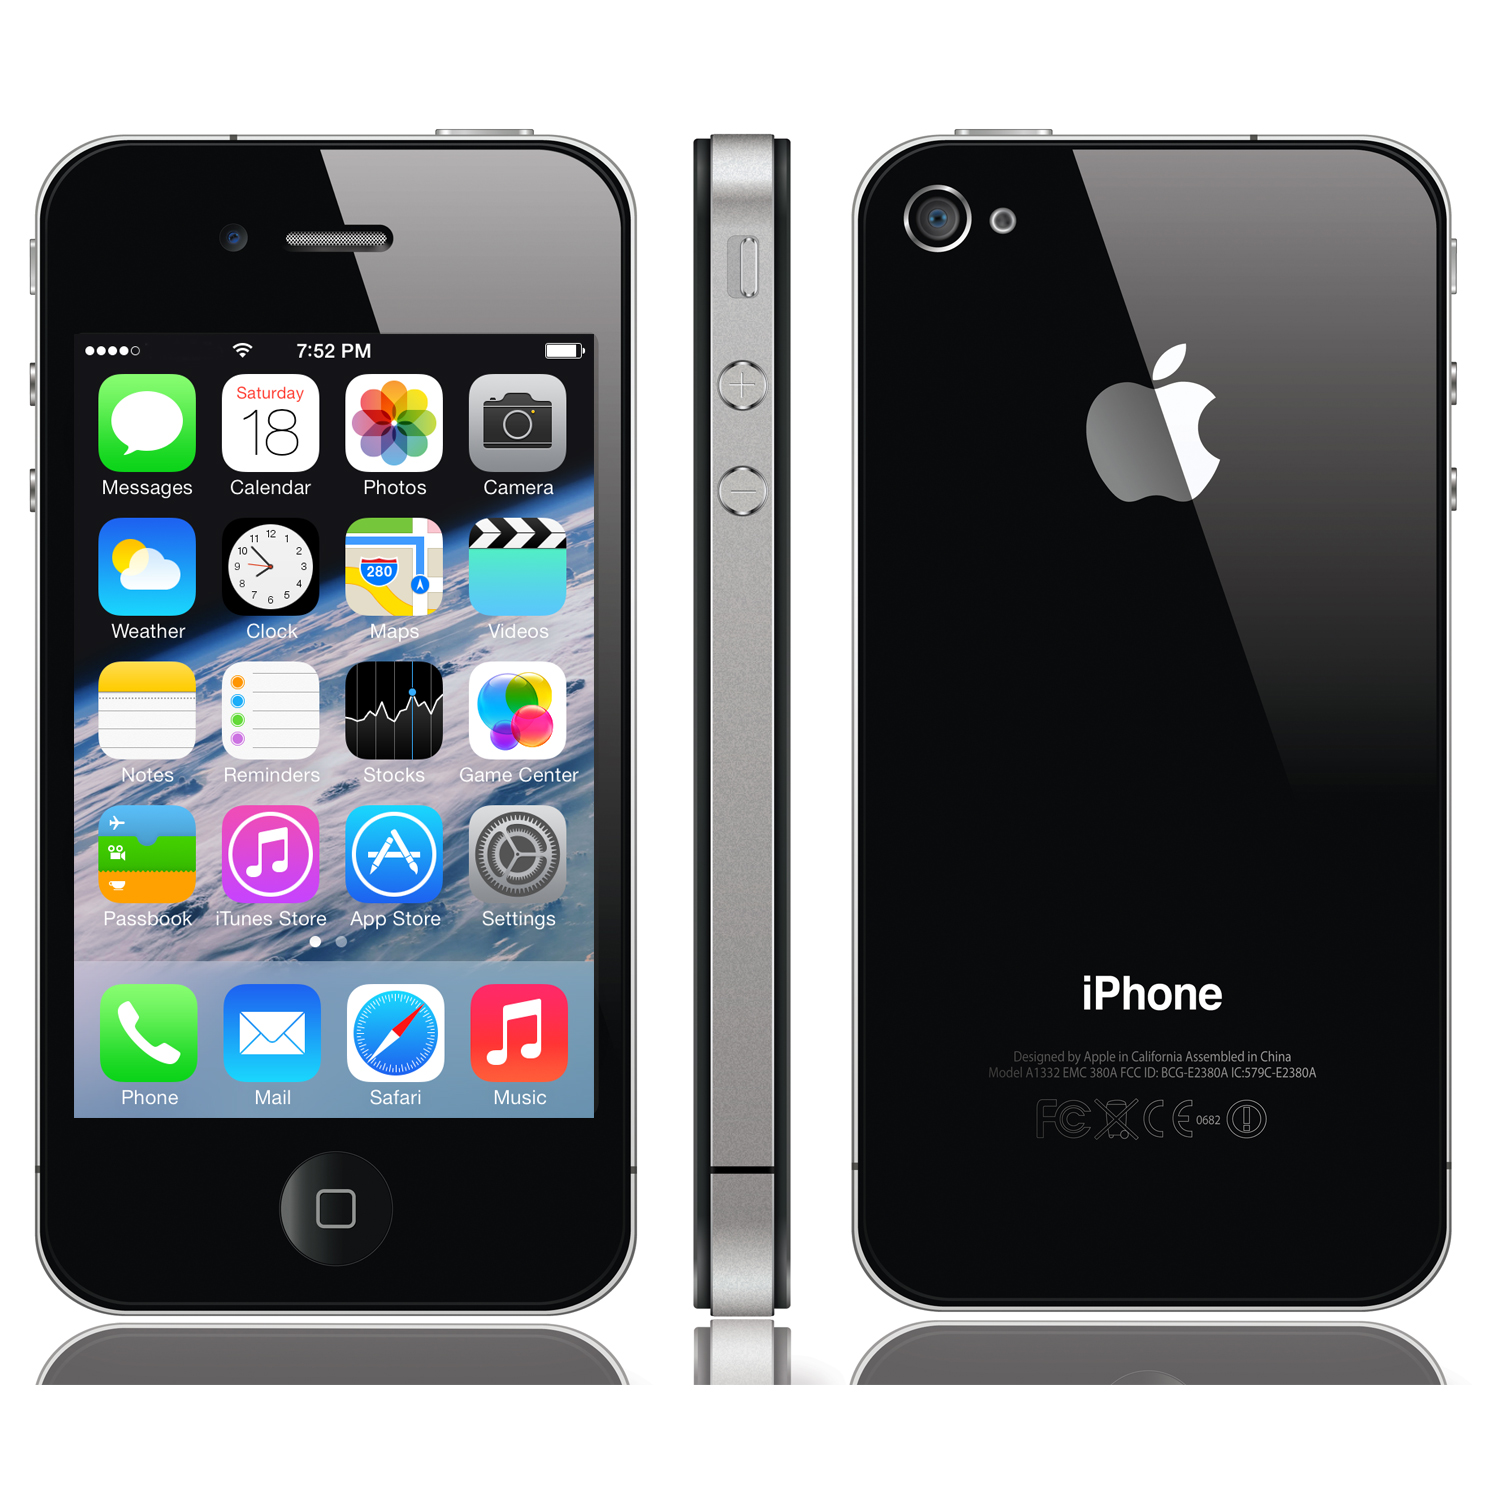 iphone 4s 8gb black verizon refurbished 885909832774 ebay rh ebay com apple iphone 4s user manual pdf download apple iphone 4s manual pdf download